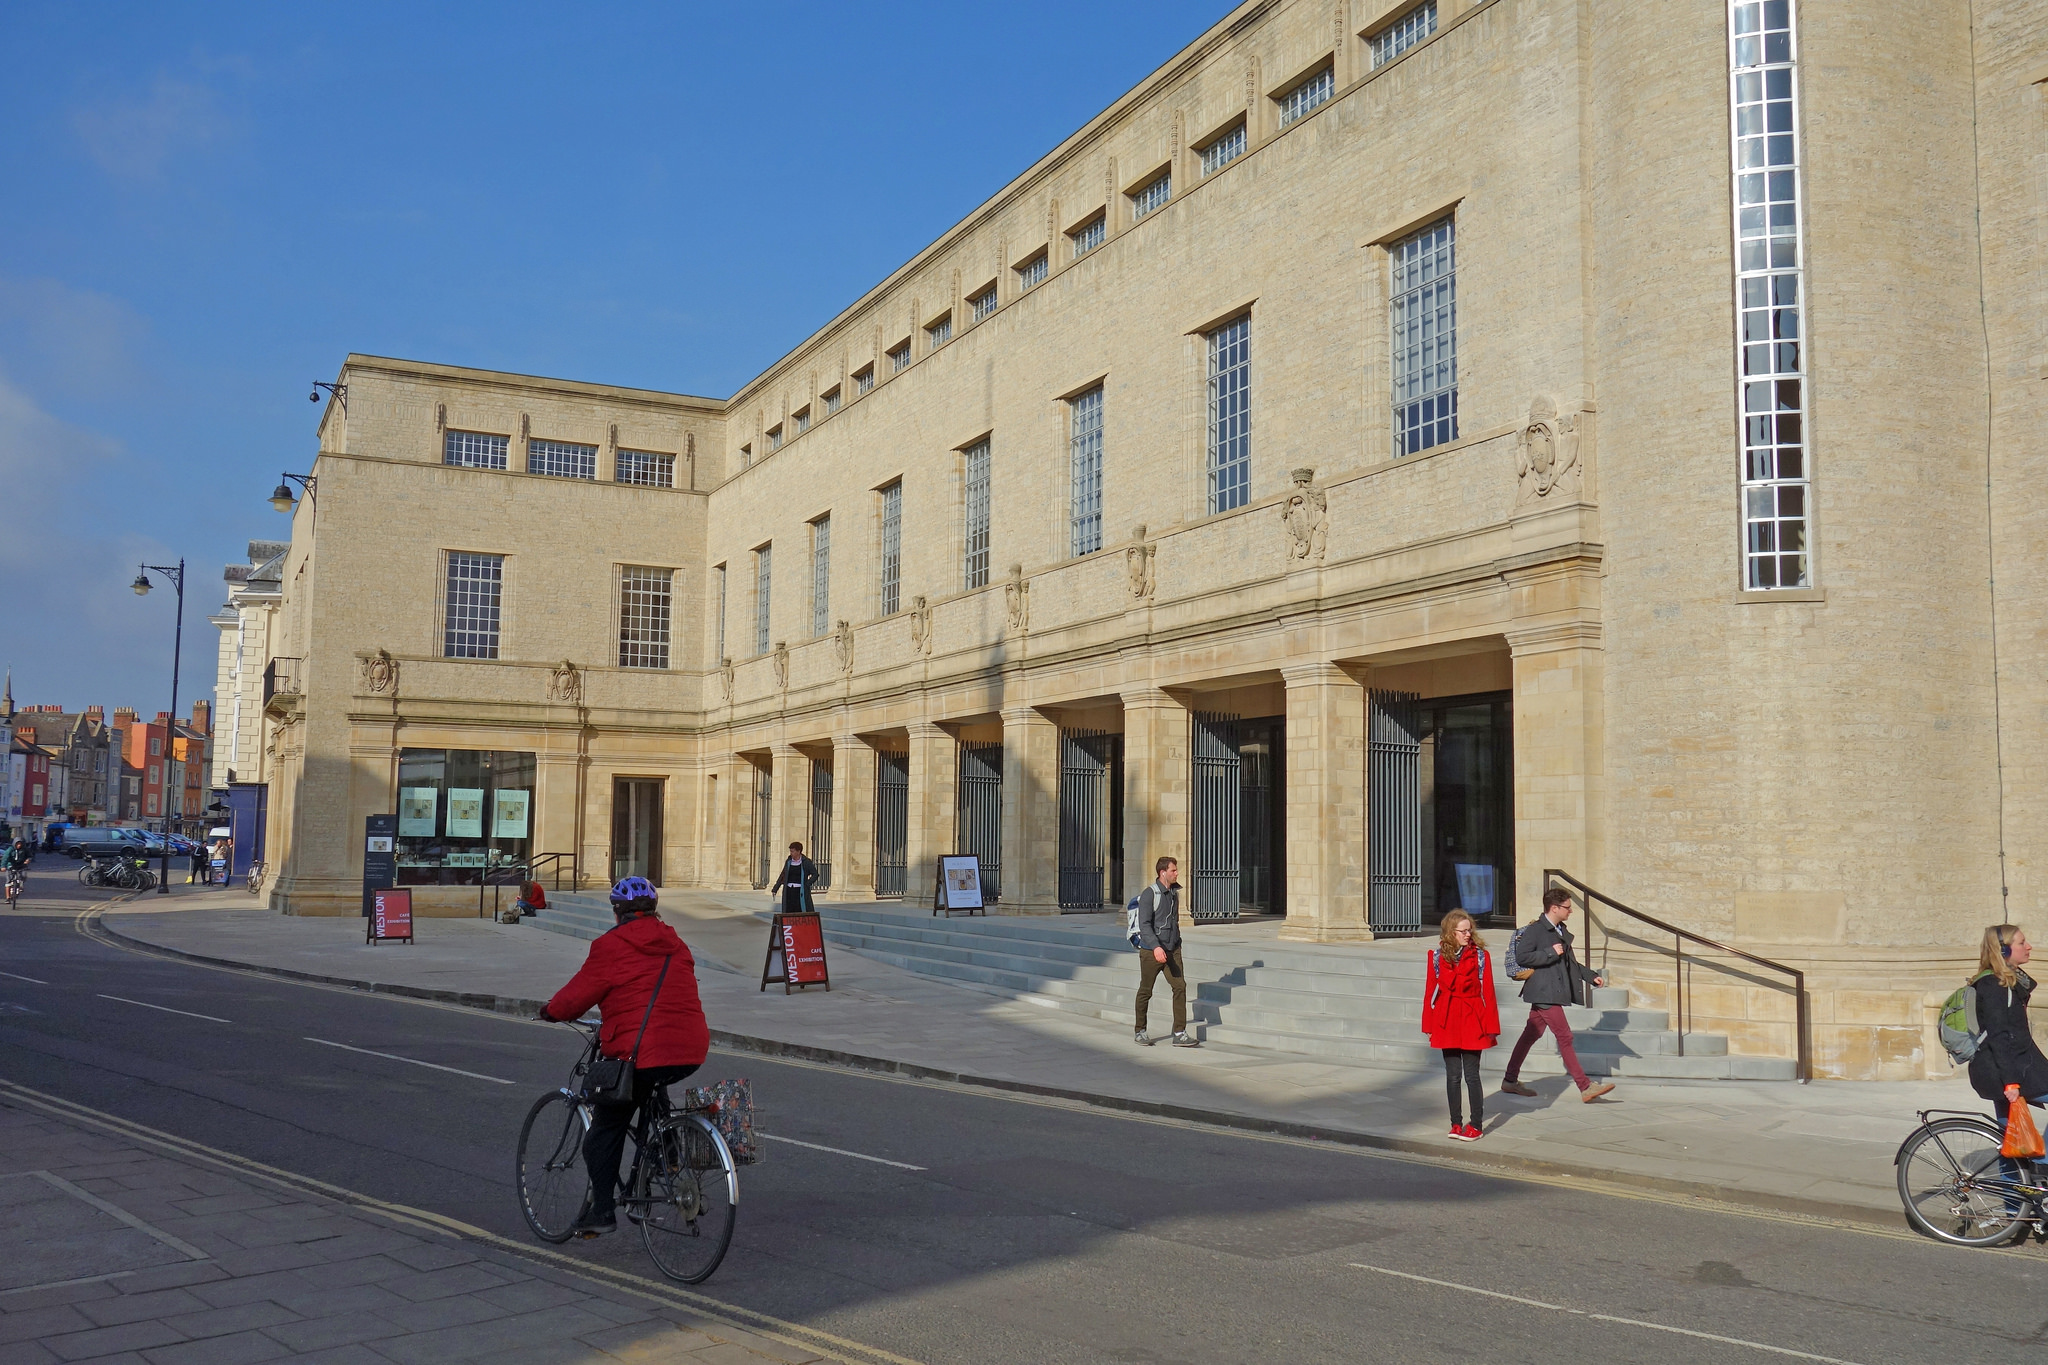 A view of the Weston Library, a large stone building, with some people walking in front of it